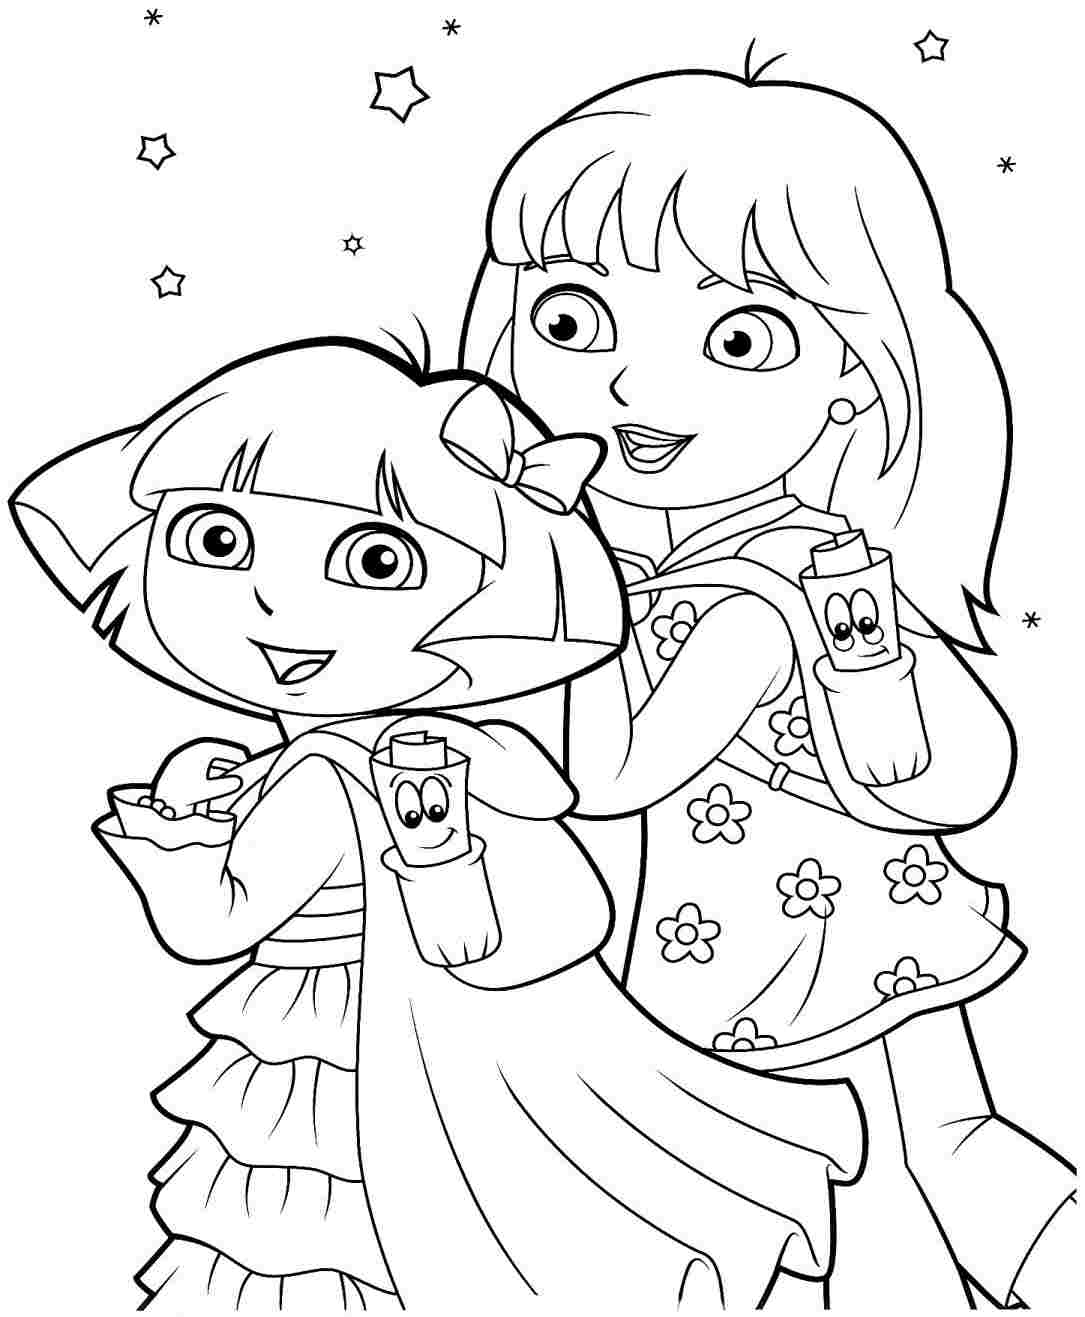 Dora and Friends Coloring Pages - Printable Coloring Pages Dora and Friends Into the City